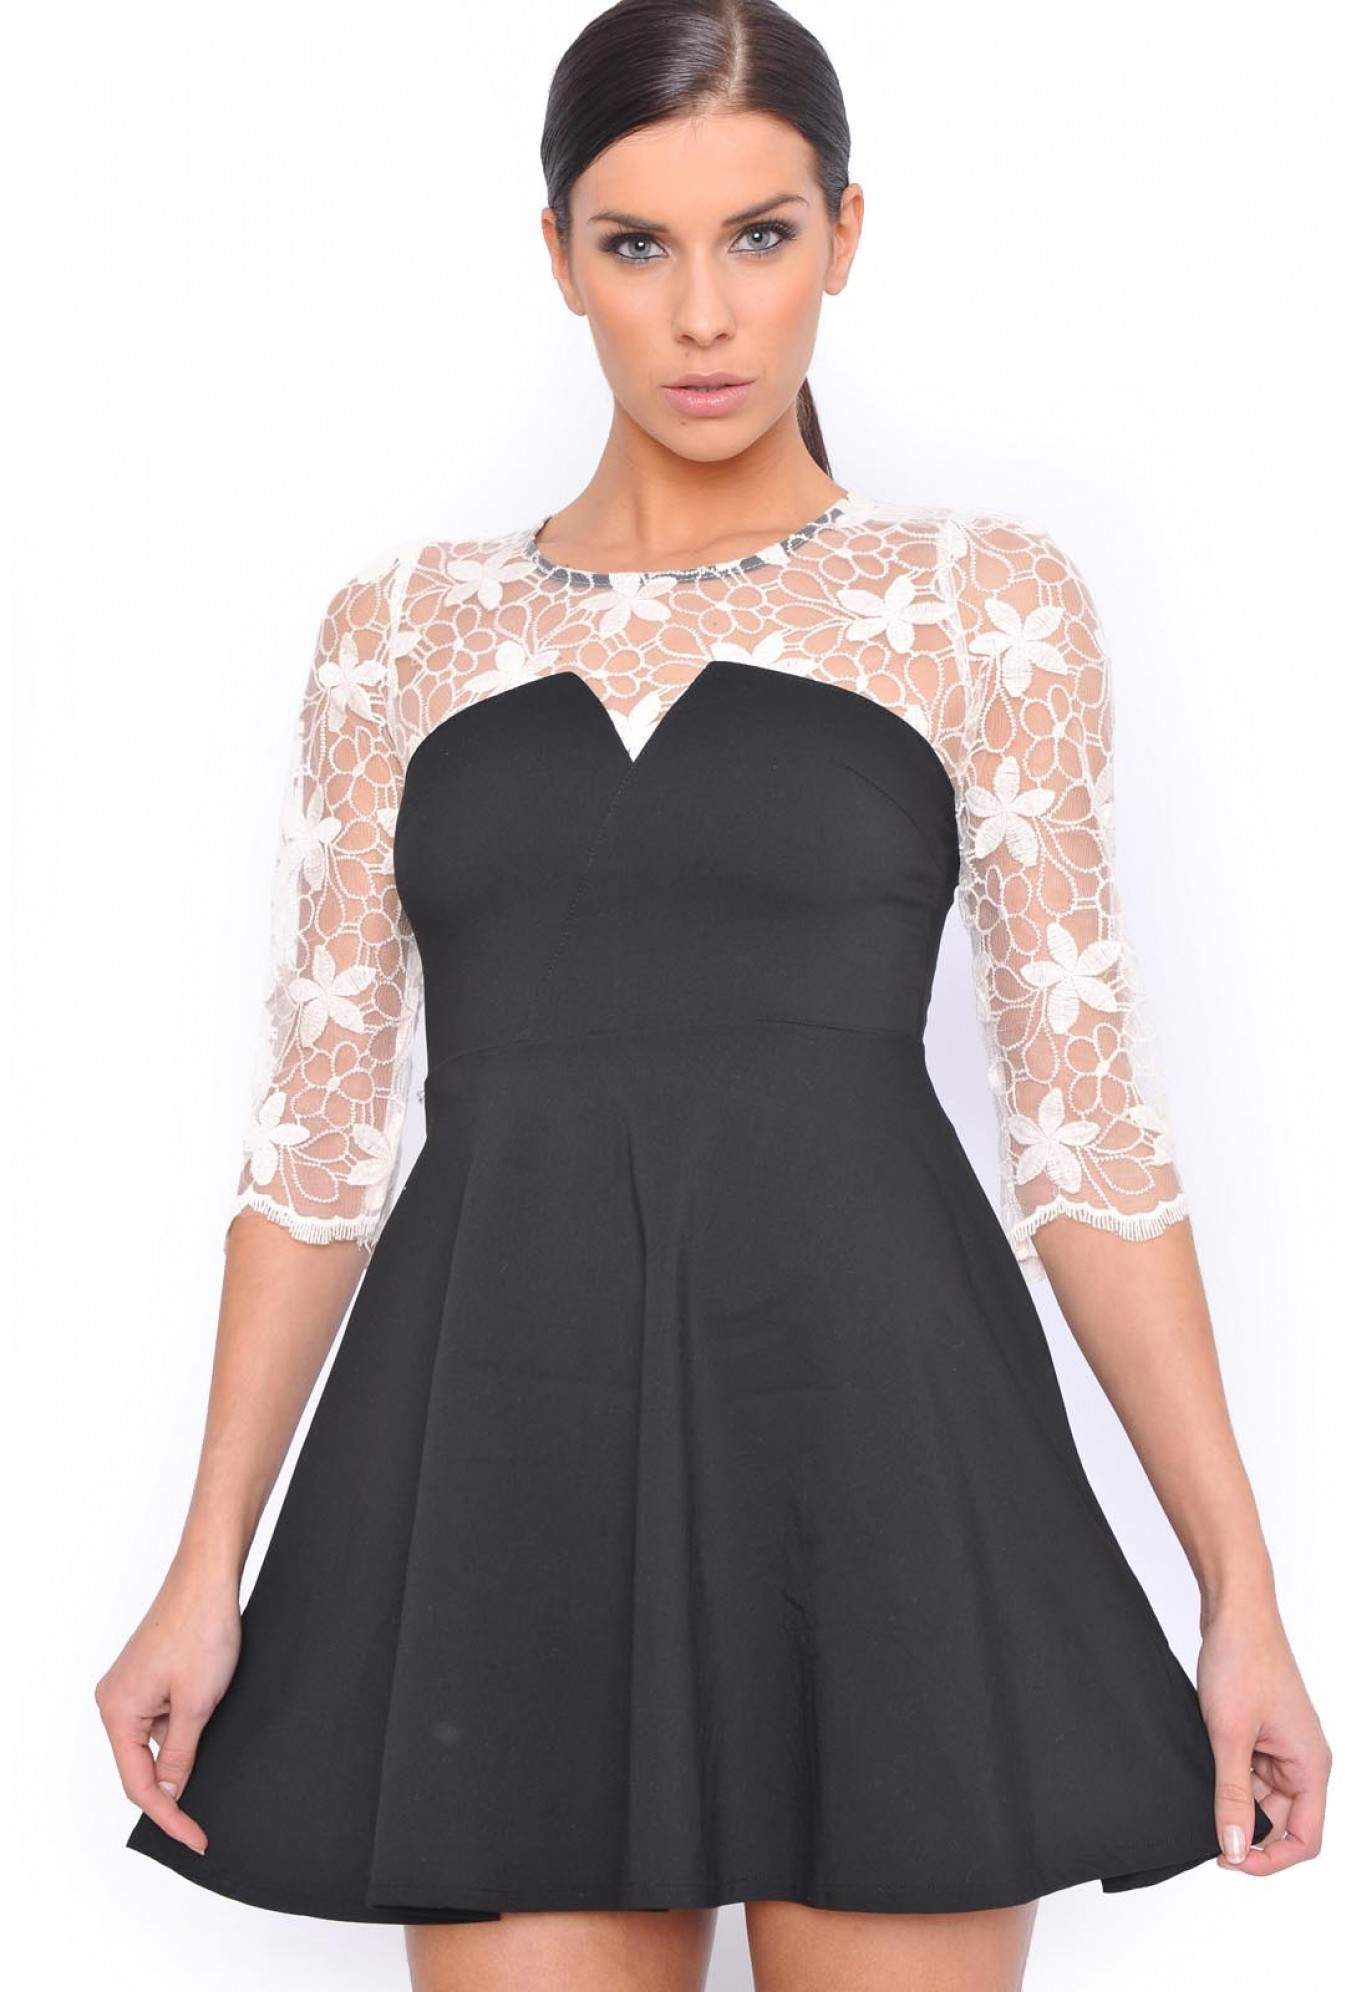 51eaef28abdc More Views. Donna Lace Top Skater Dress in Black